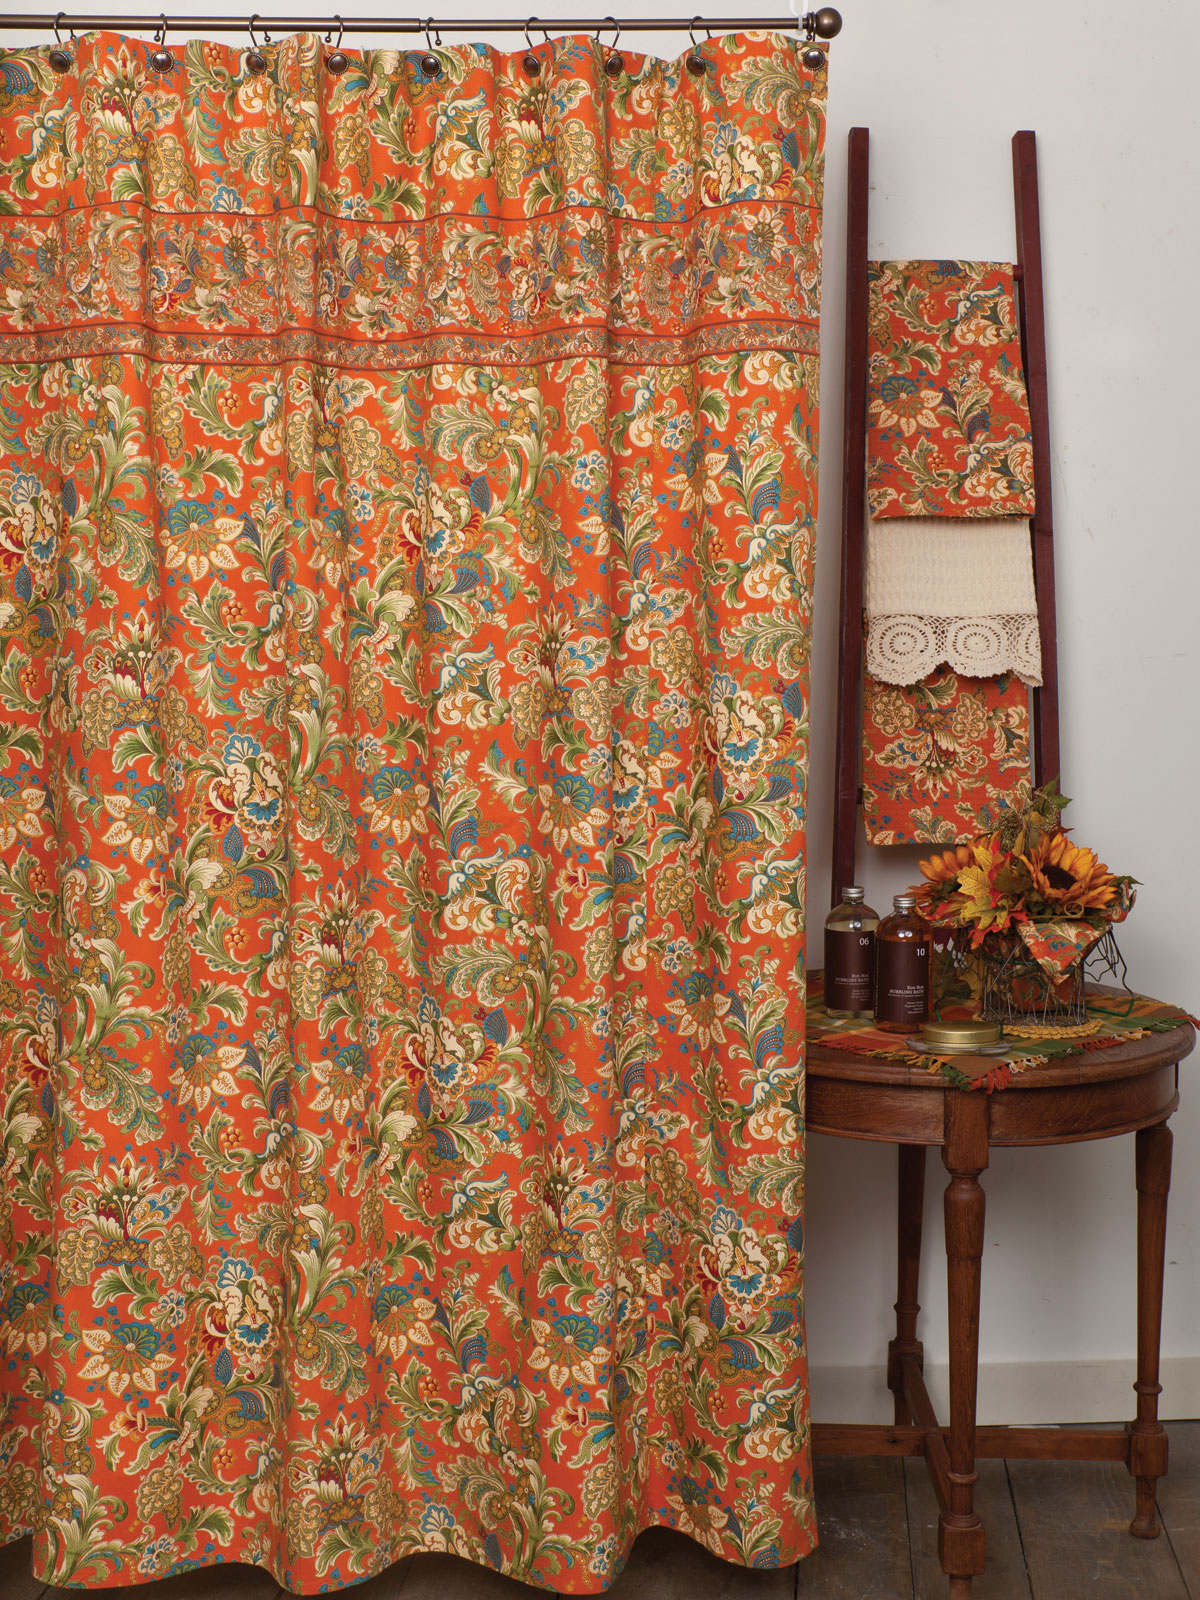 Jacob 39 S Court Shower Curtain Your Home Curtains Beautiful Designs By April Cornell